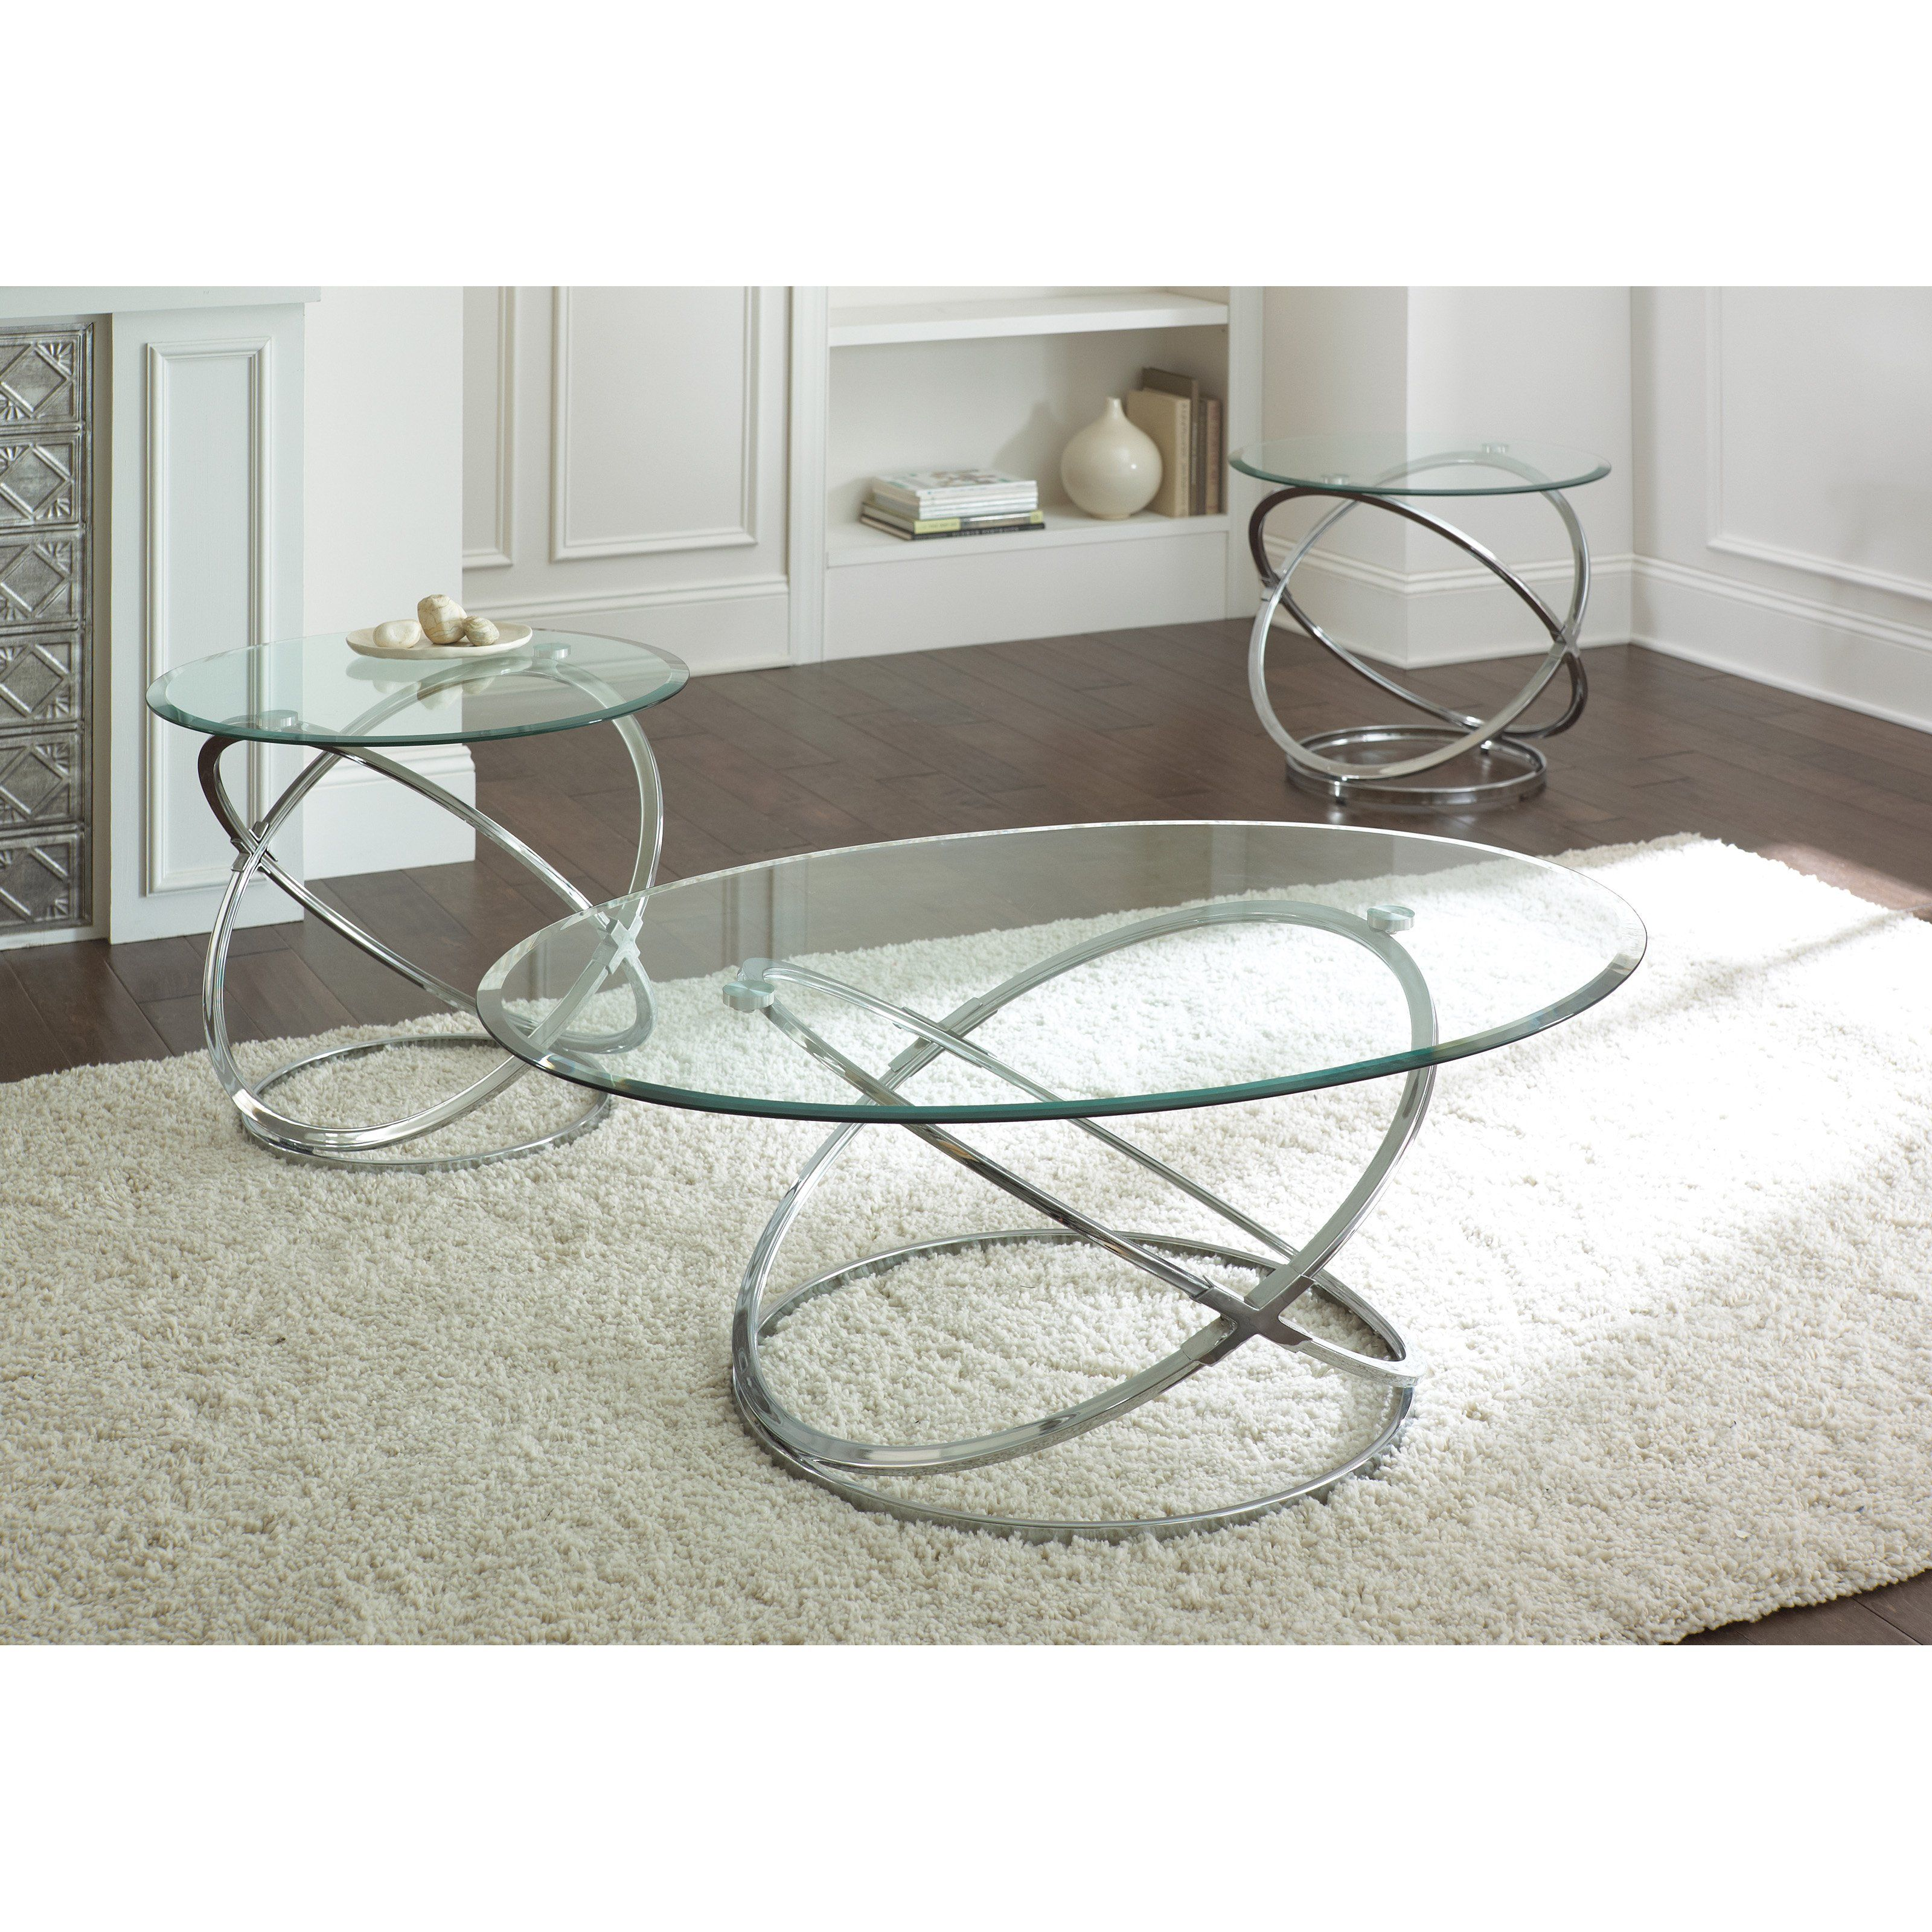 Steve Silver Orion Oval Chrome And Glass Coffee Table Set Silver